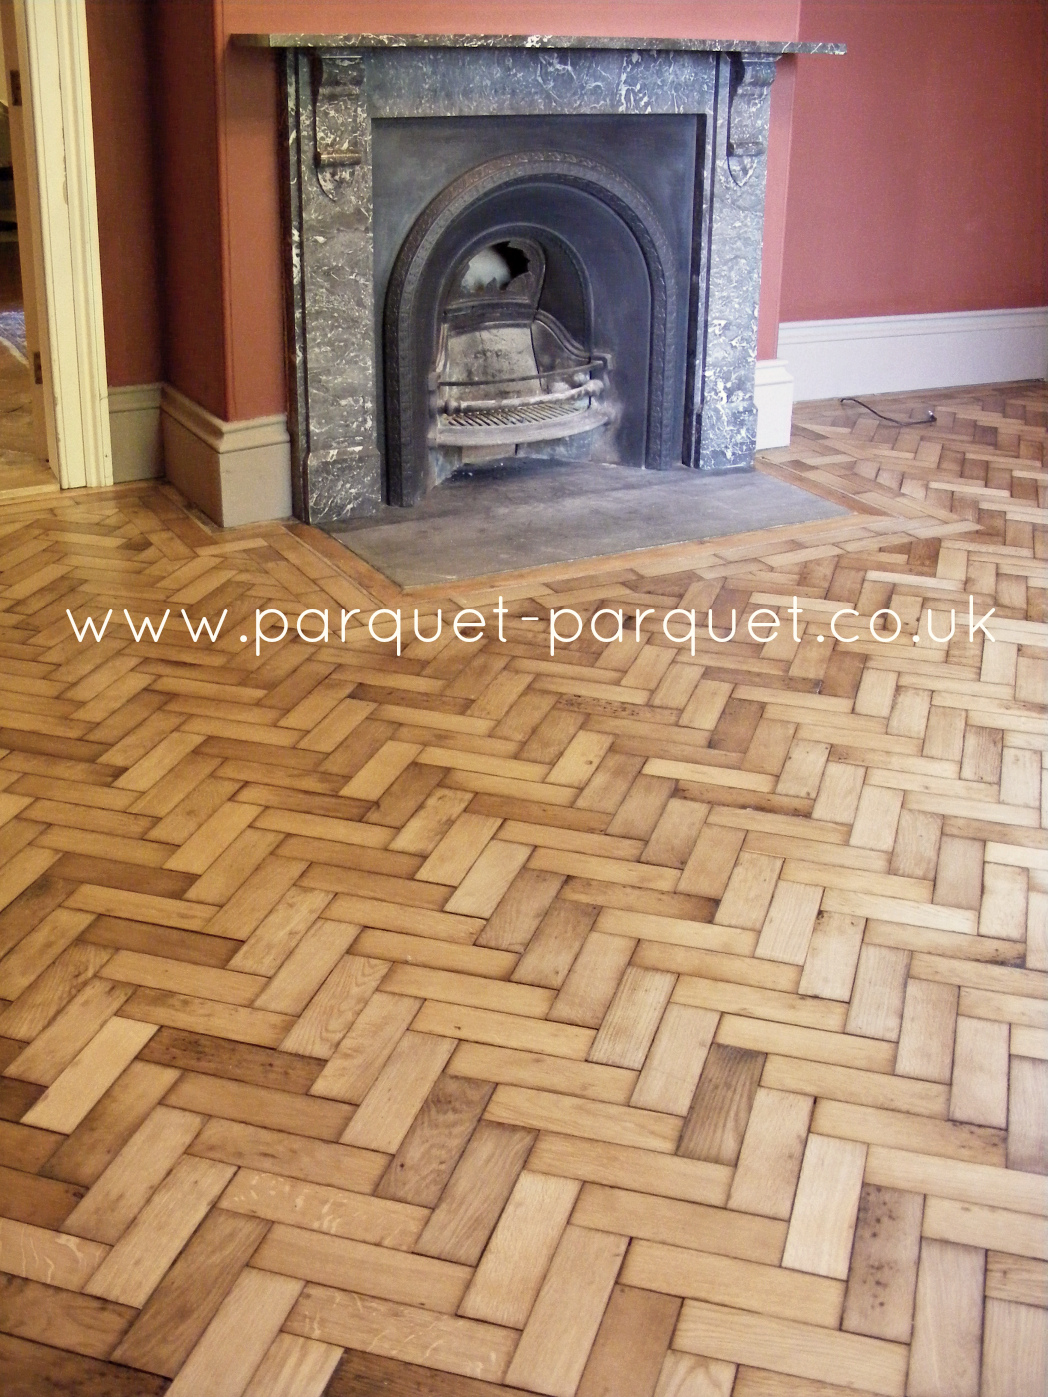 English Oak Reclaimed Parquet Fitting Clean Parquet